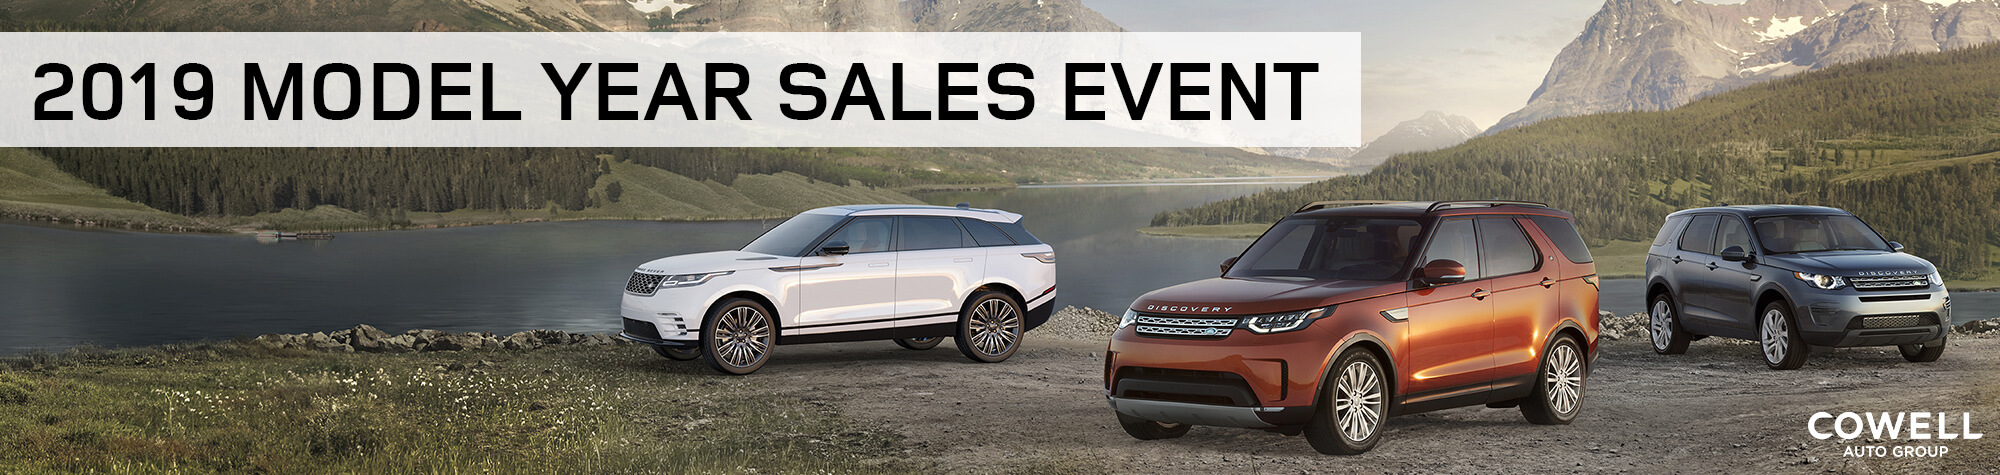 2019 Model Year Sales Event (Chinese)